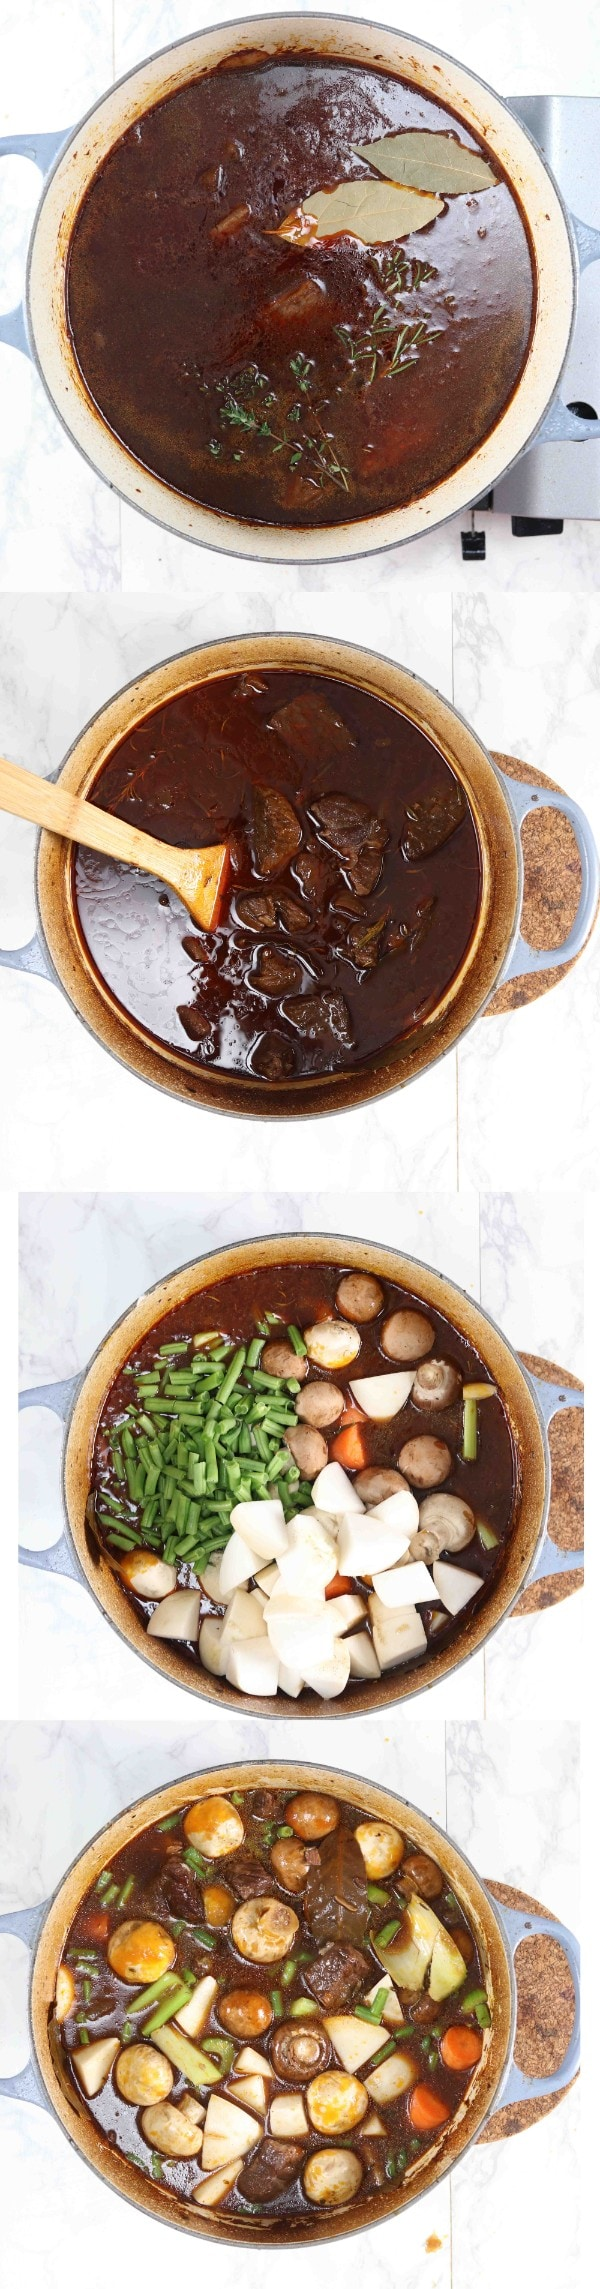 Pictures showing how to make a gluten free low carb beef stew step by step.